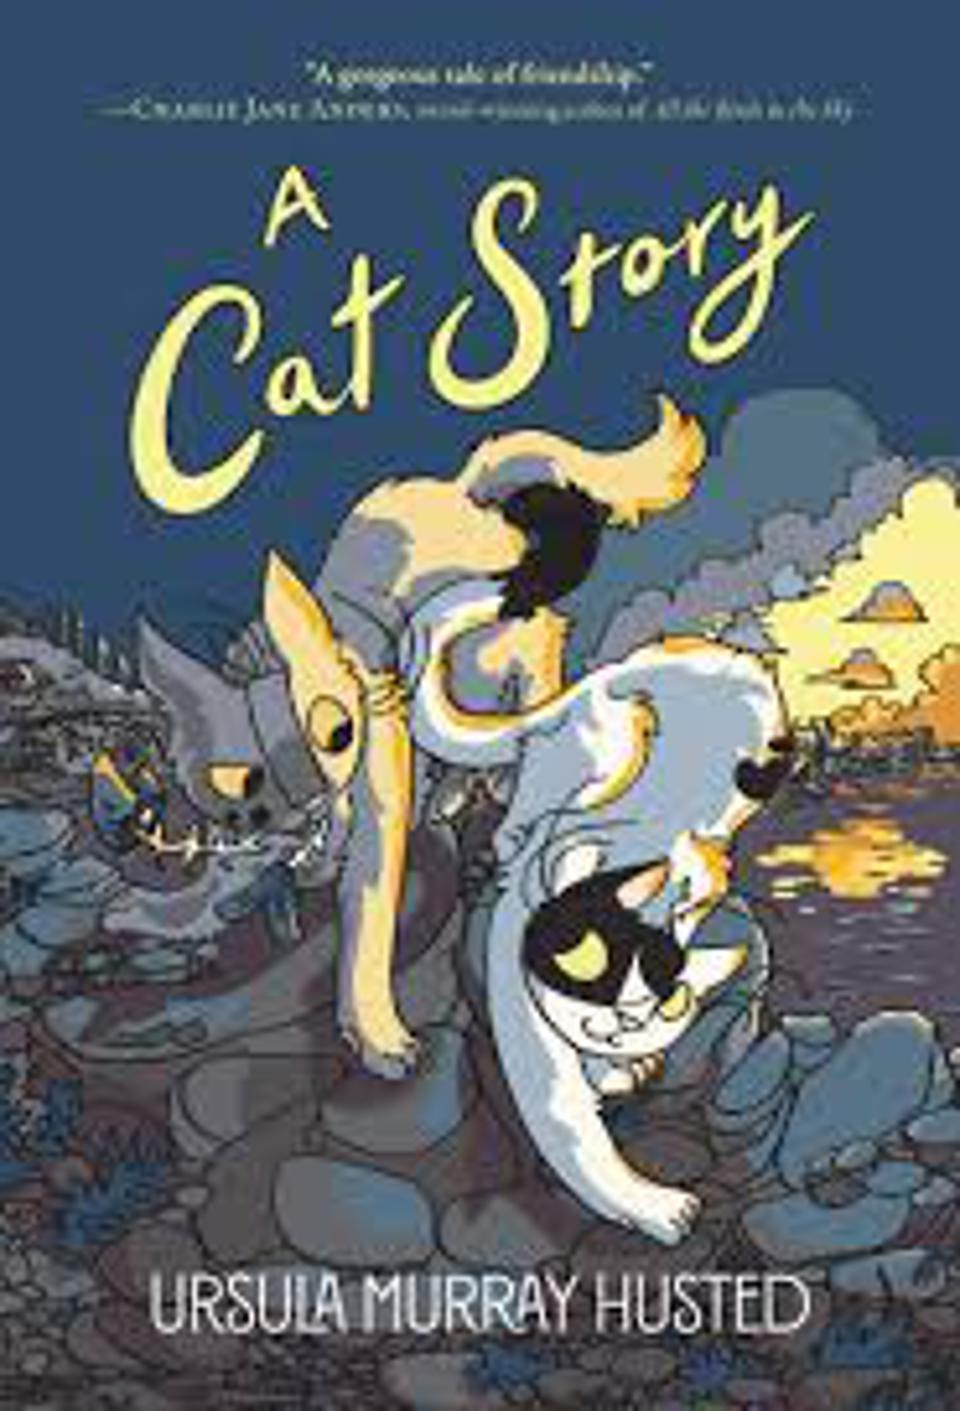 Cover of a Cat Story by Ursual Murray Husted Quill Tree Books YA teen graphic novel